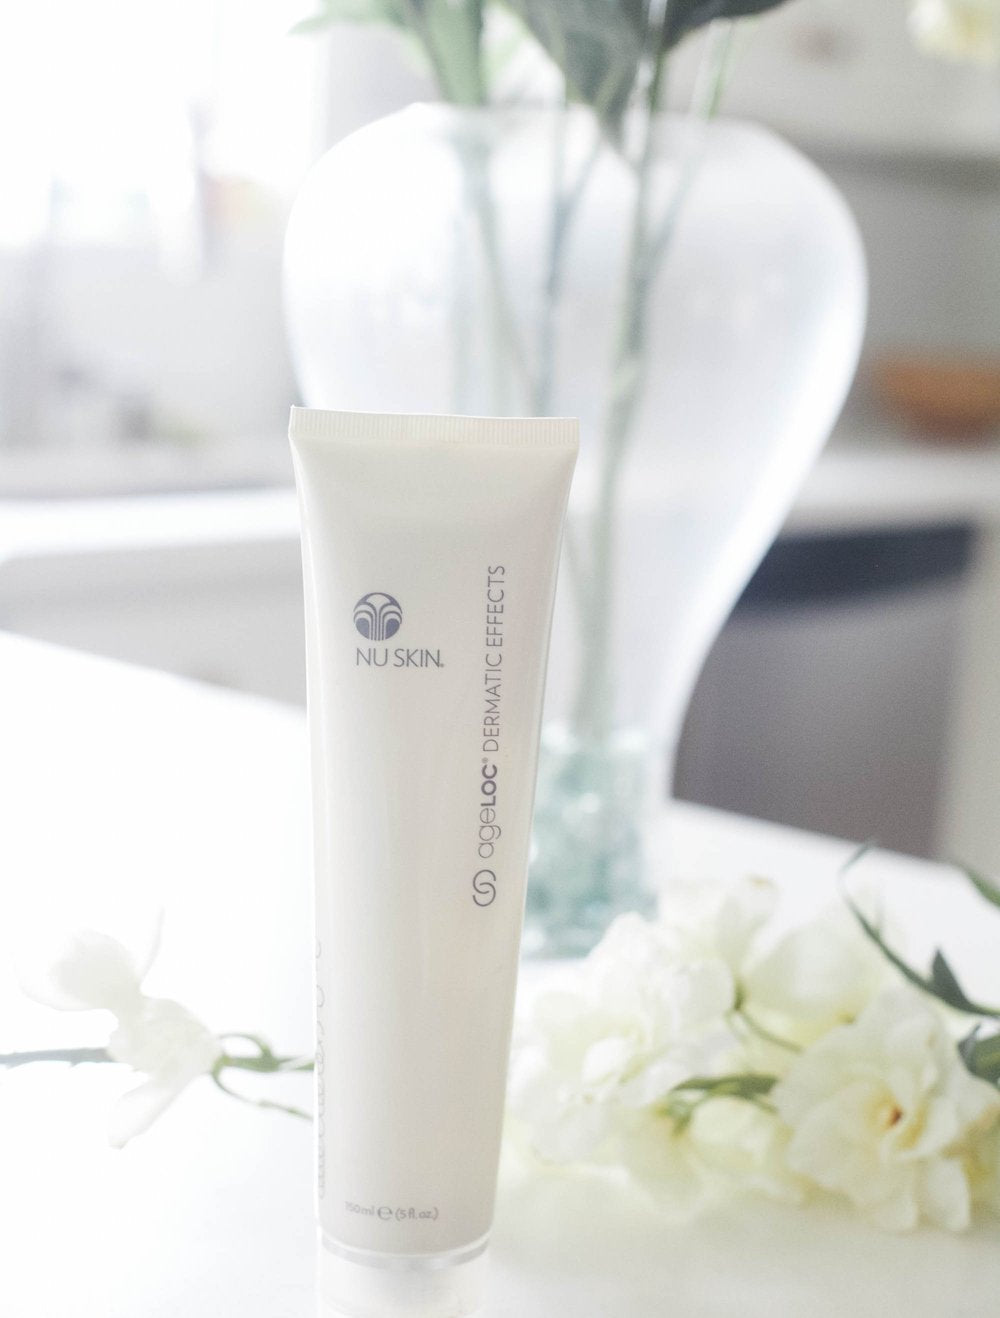 Dermatic Effects Body Contouring Lotion